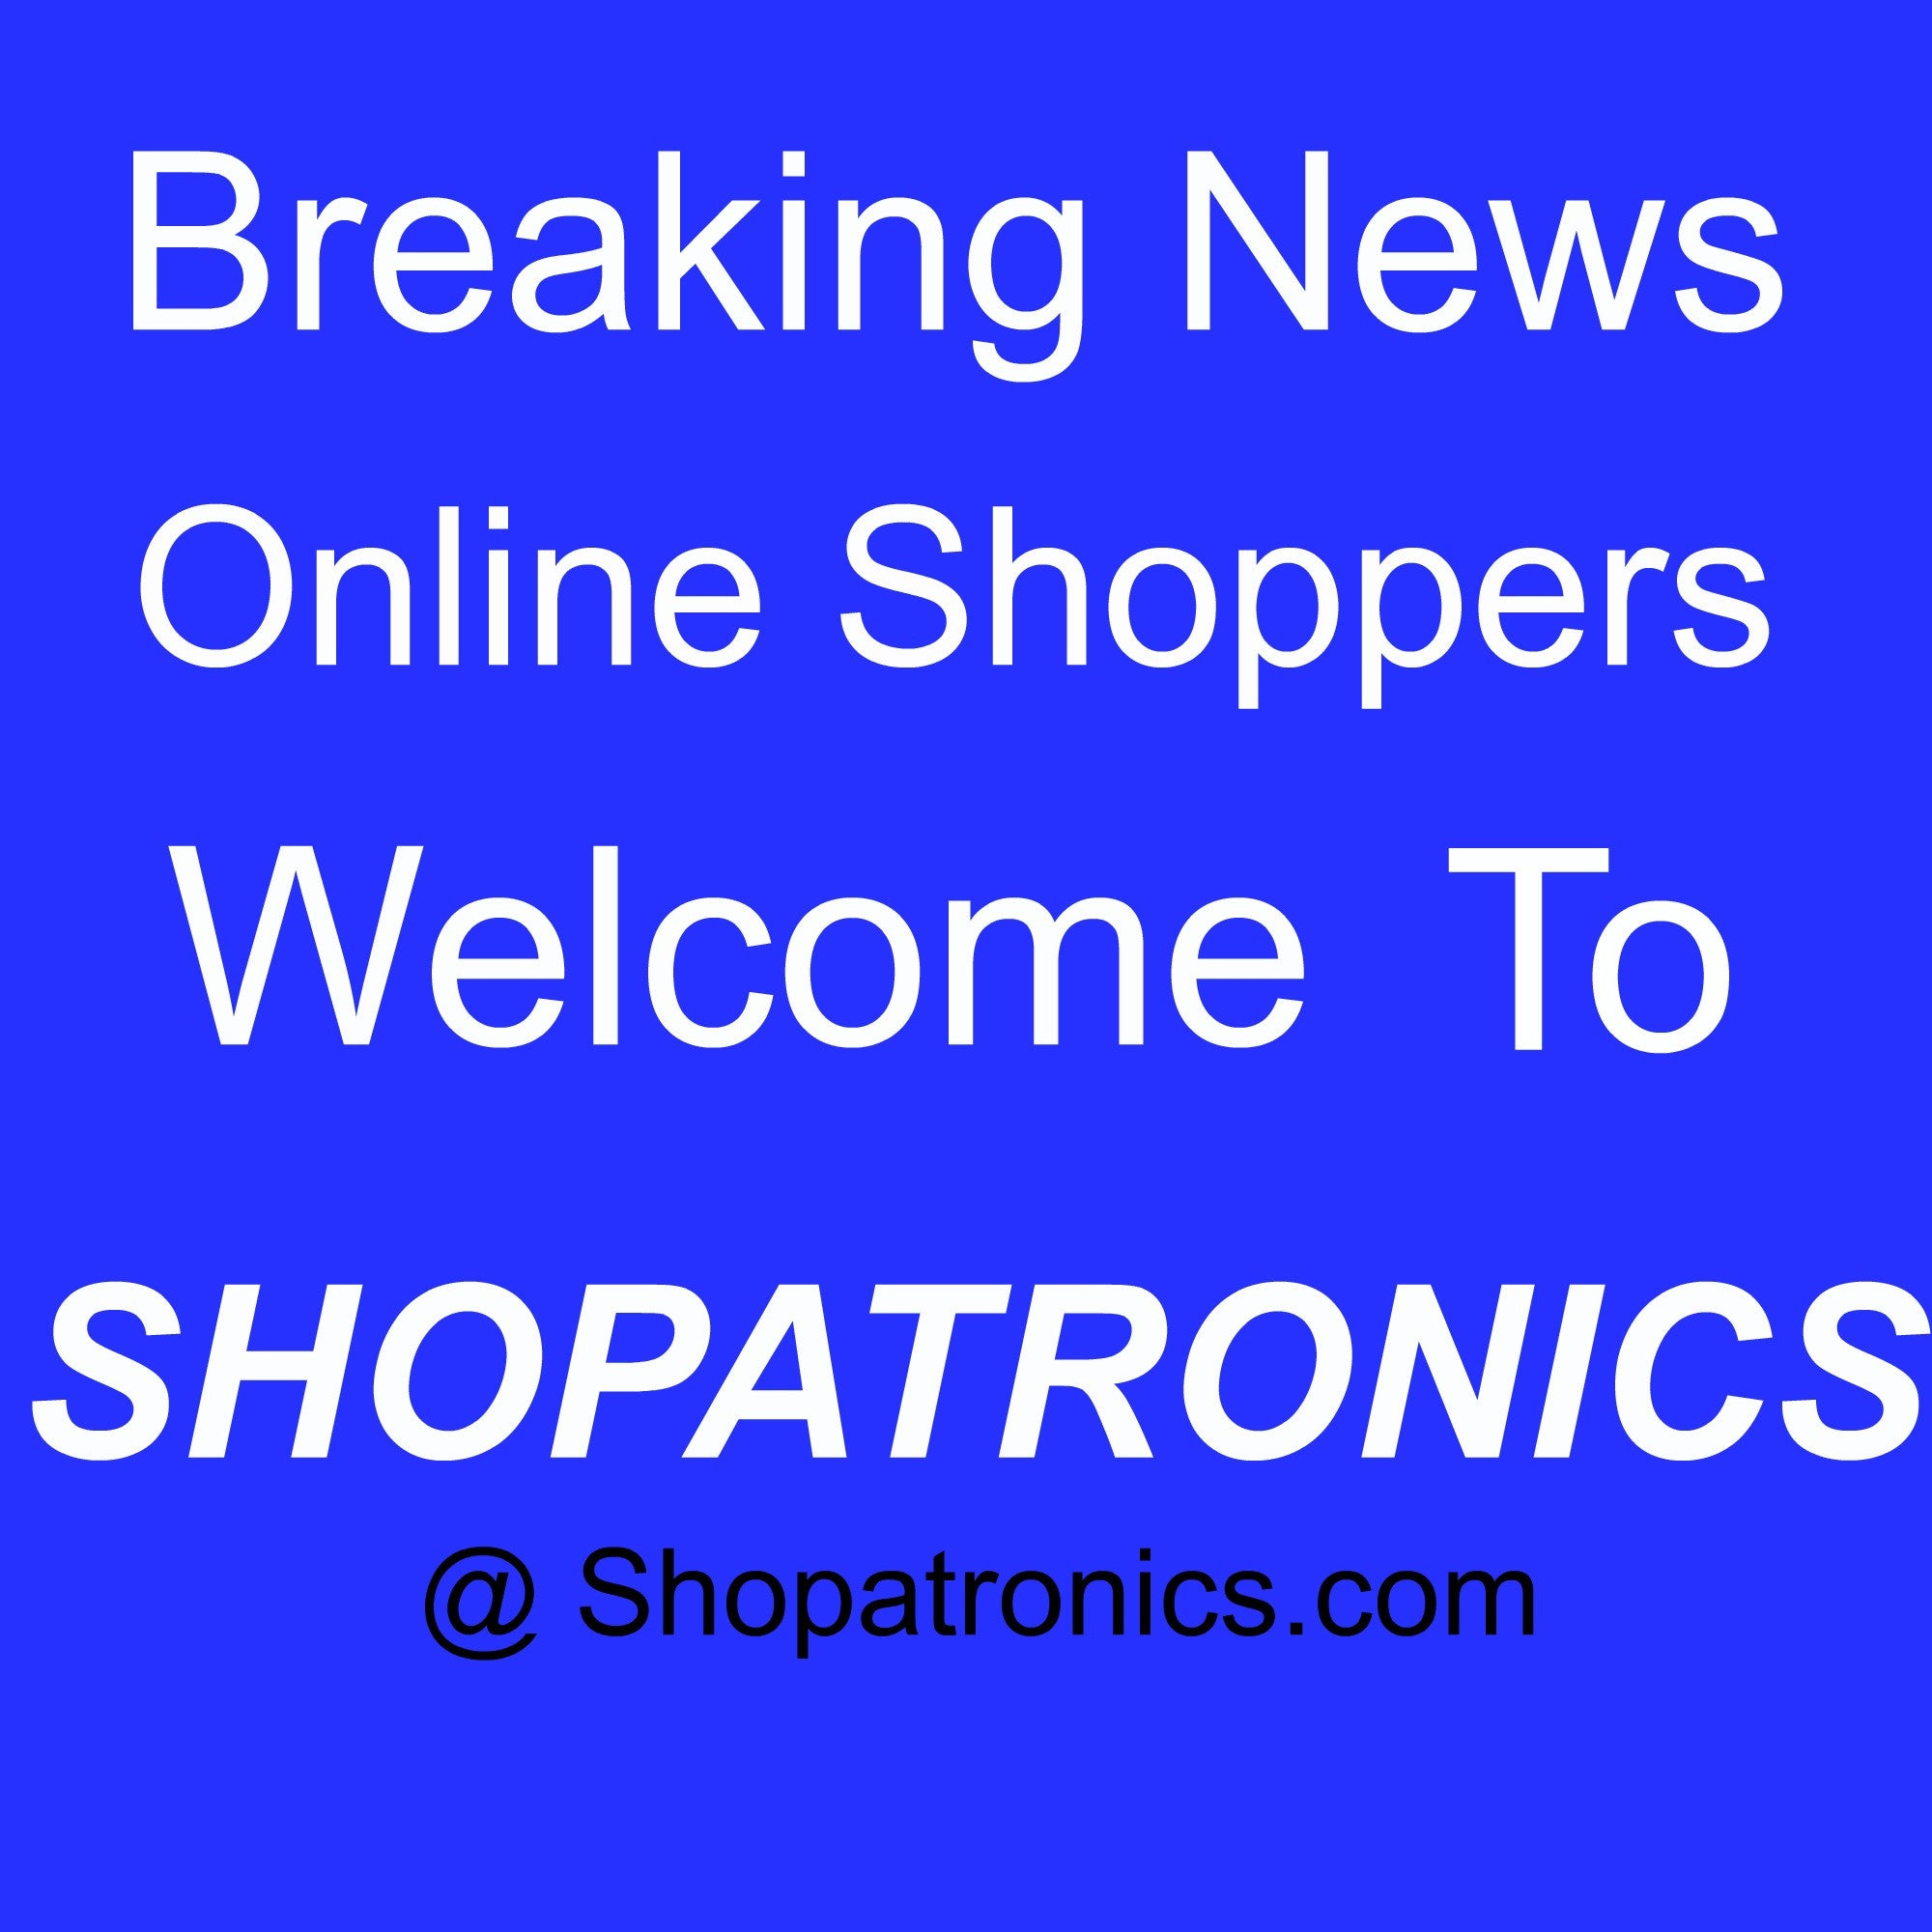 Hello & Welcome to Shopatronics